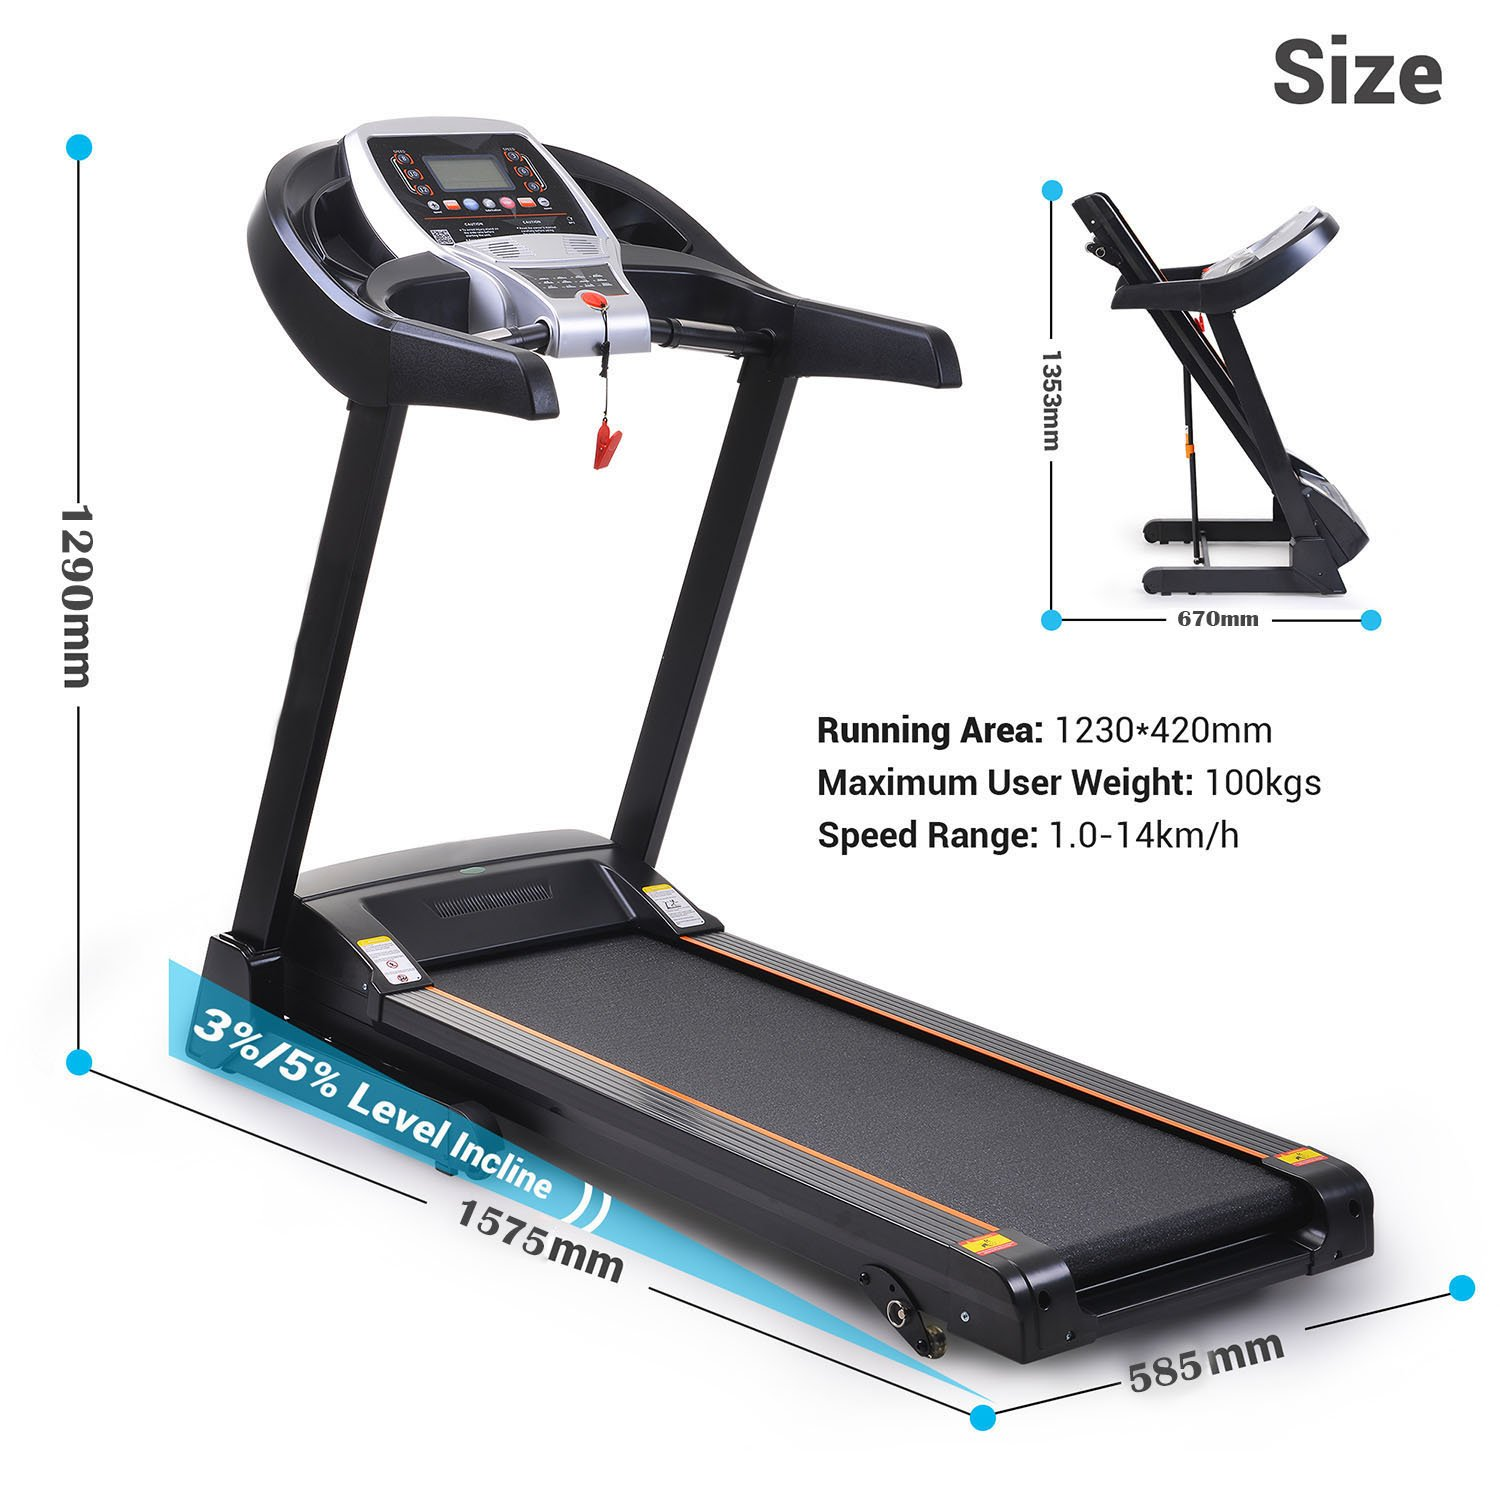 Miageek Fitness Folding Electric Jogging Treadmill with Smartphone APP Control, Walking Running Exercise Machine Incline Trainer Equipment Easy Assembly (2.25 HP - Black) by Miageek (Image #2)